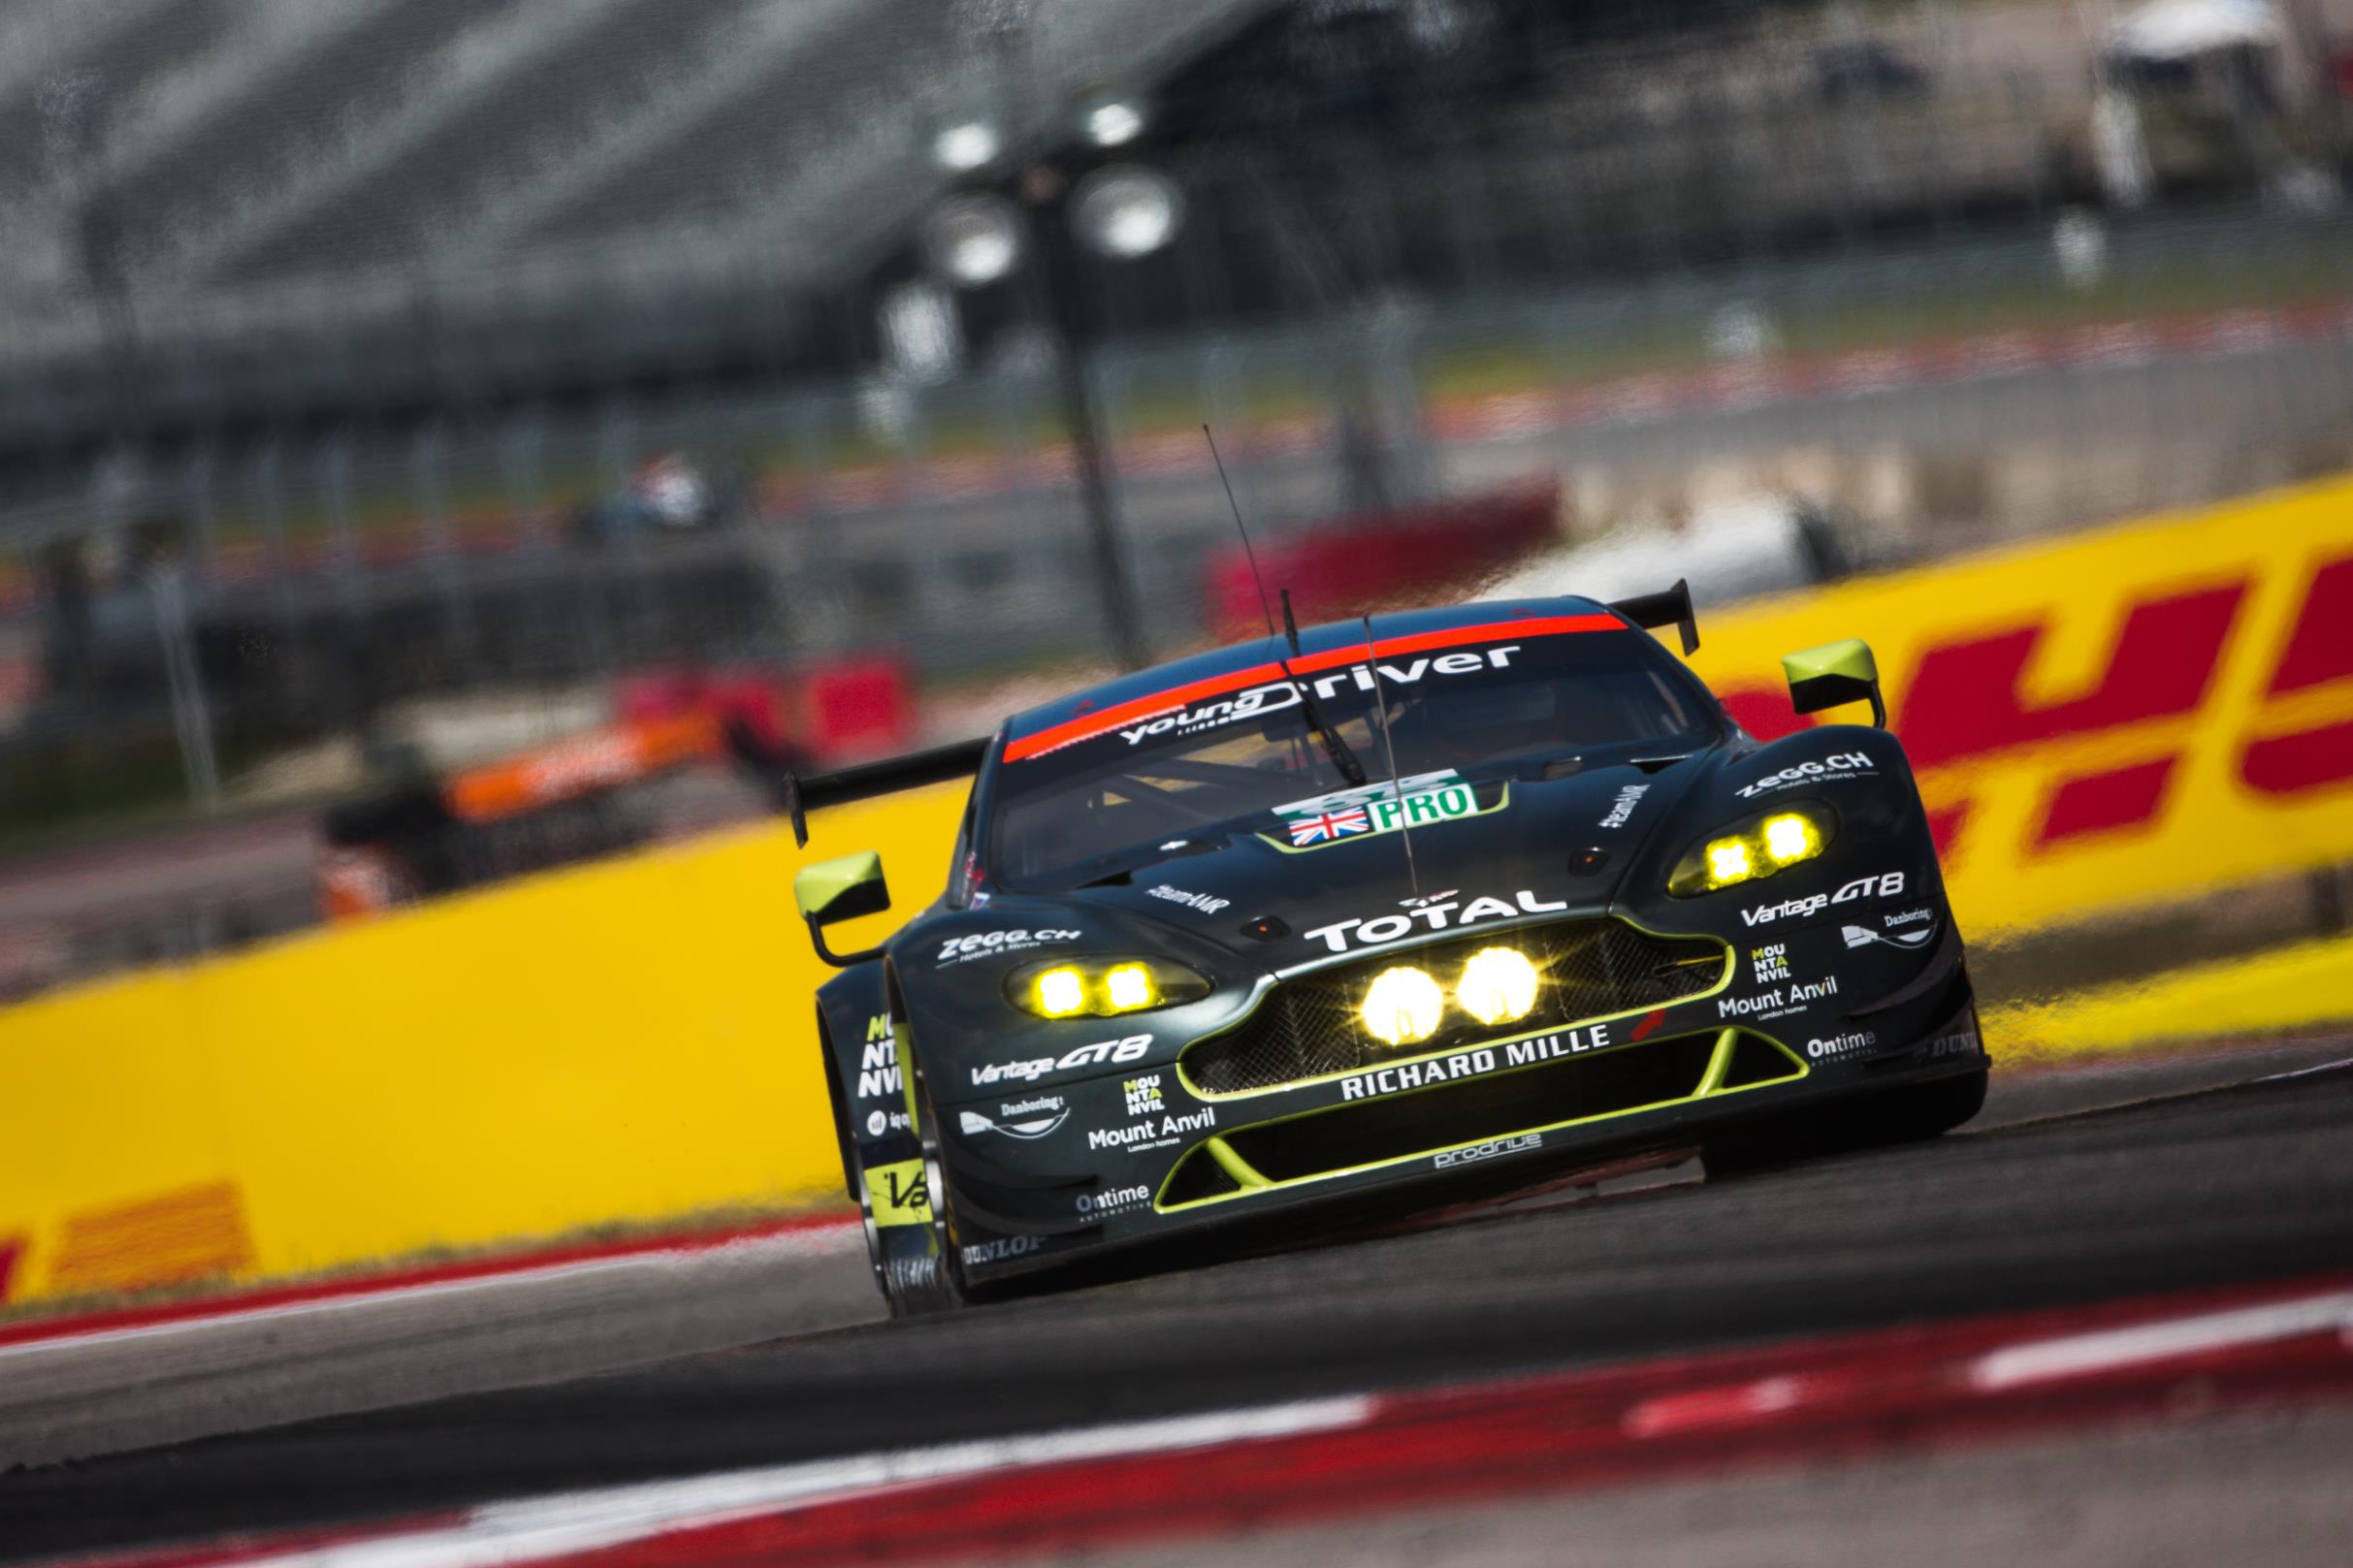 Aston Martin Dominates Fte At 6 Hours Of Circuit Of The